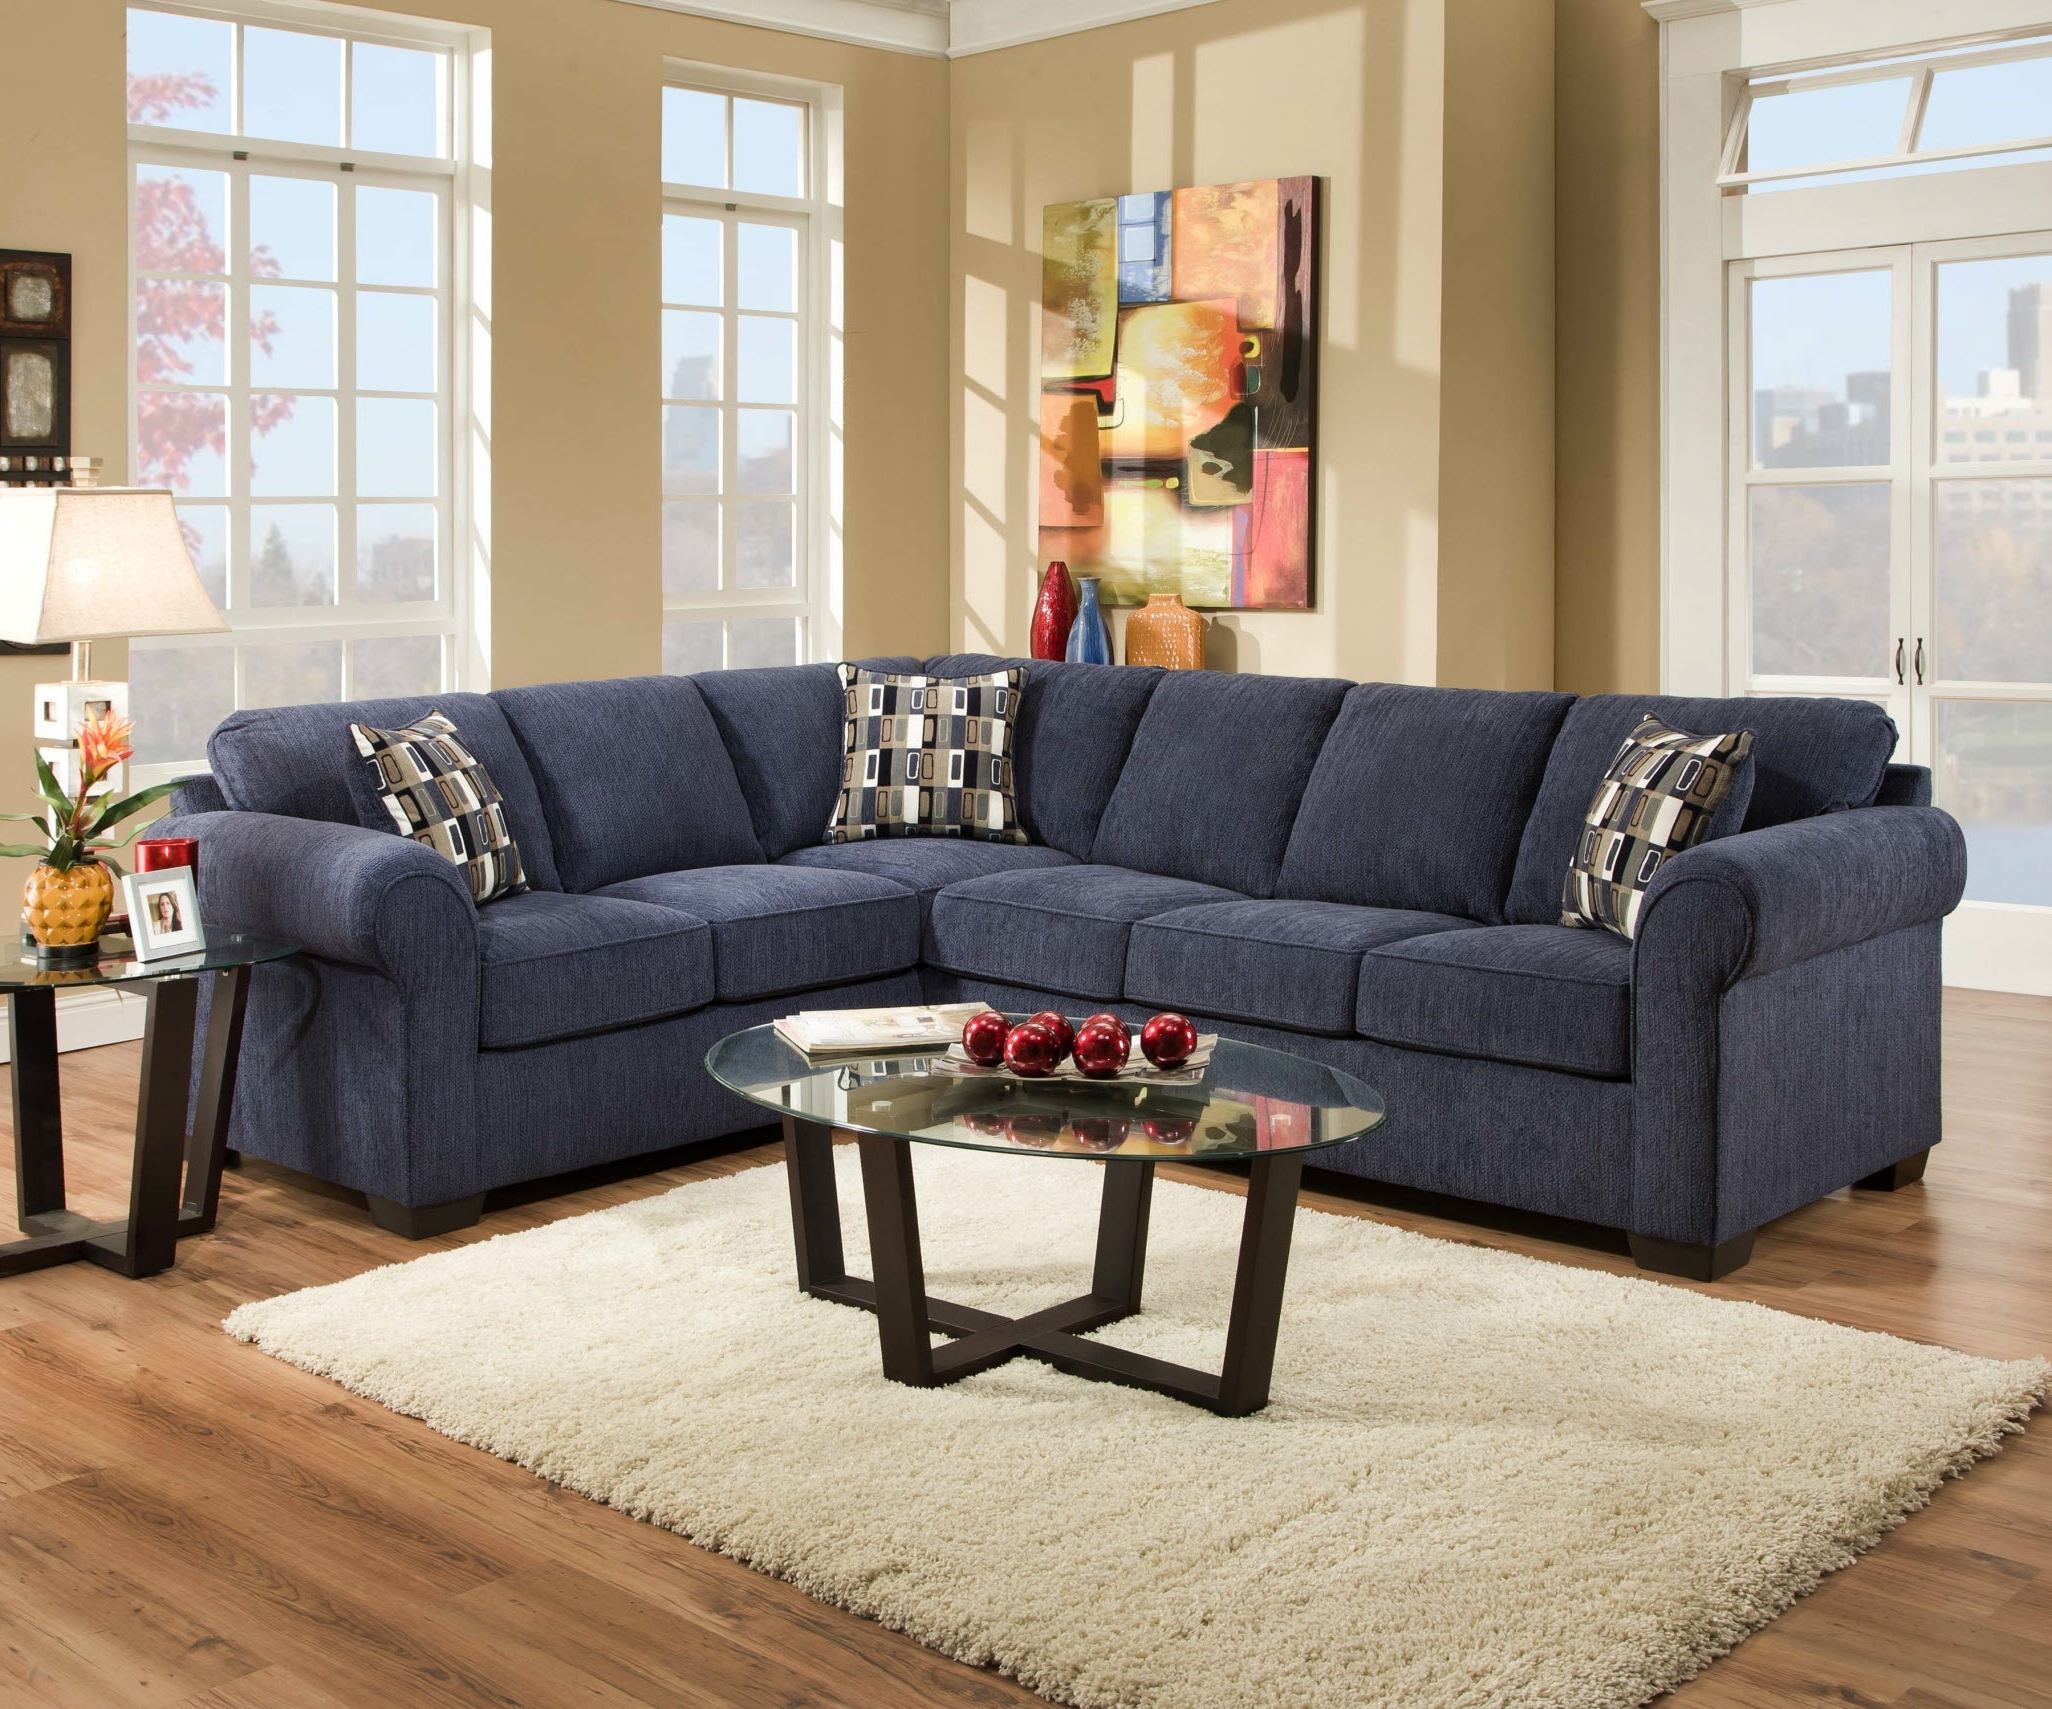 Best And Newest Ottawa Sectional Sofas In Living Room Sofa Beautiful Blue Microfiber Sectional In Sofas (View 6 of 15)